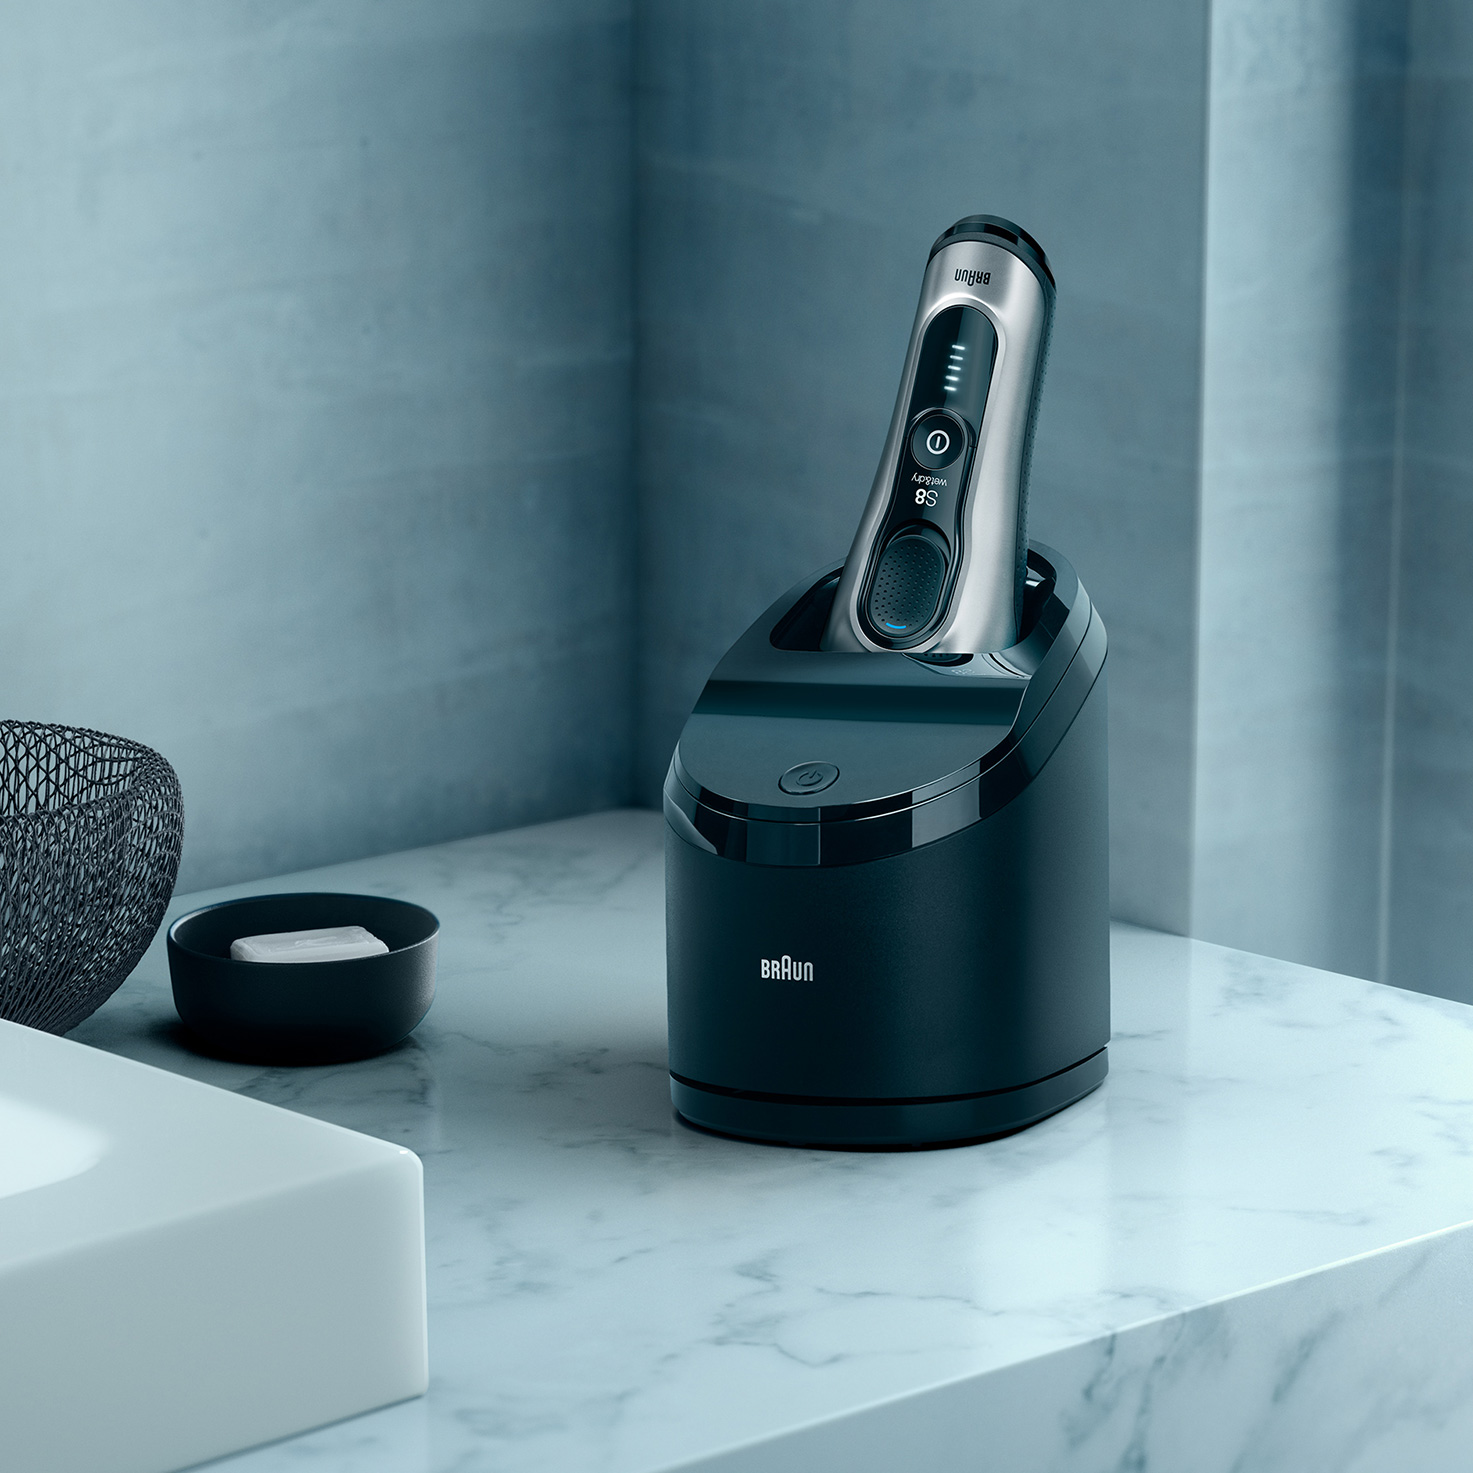 Series 8 8391cc shaver in Clean & Charge station